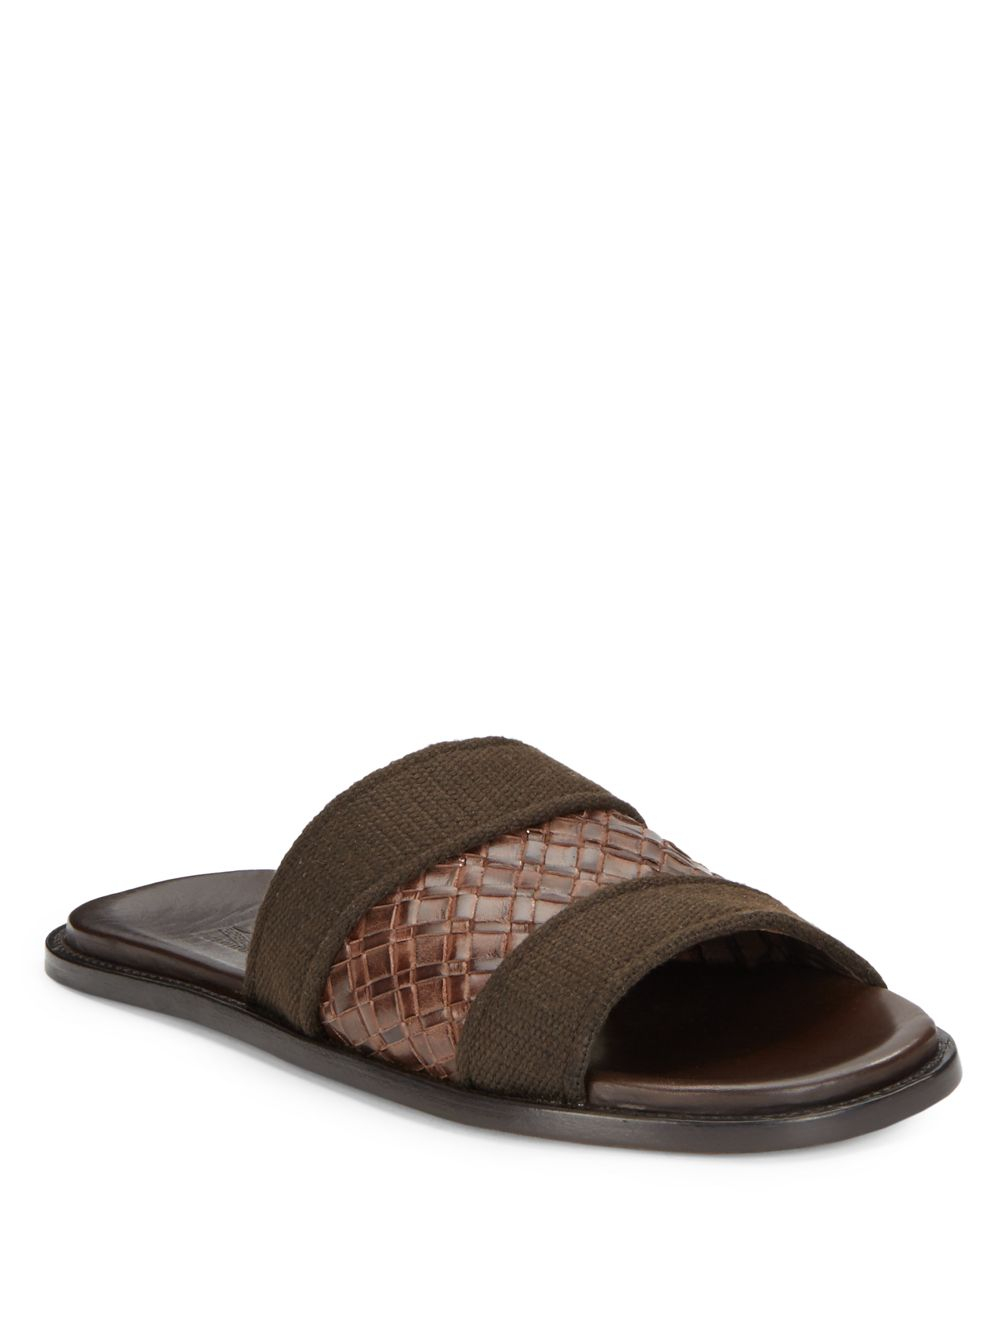 Ferragamo Bud Woven Leather Sandals In Brown For Men Lyst